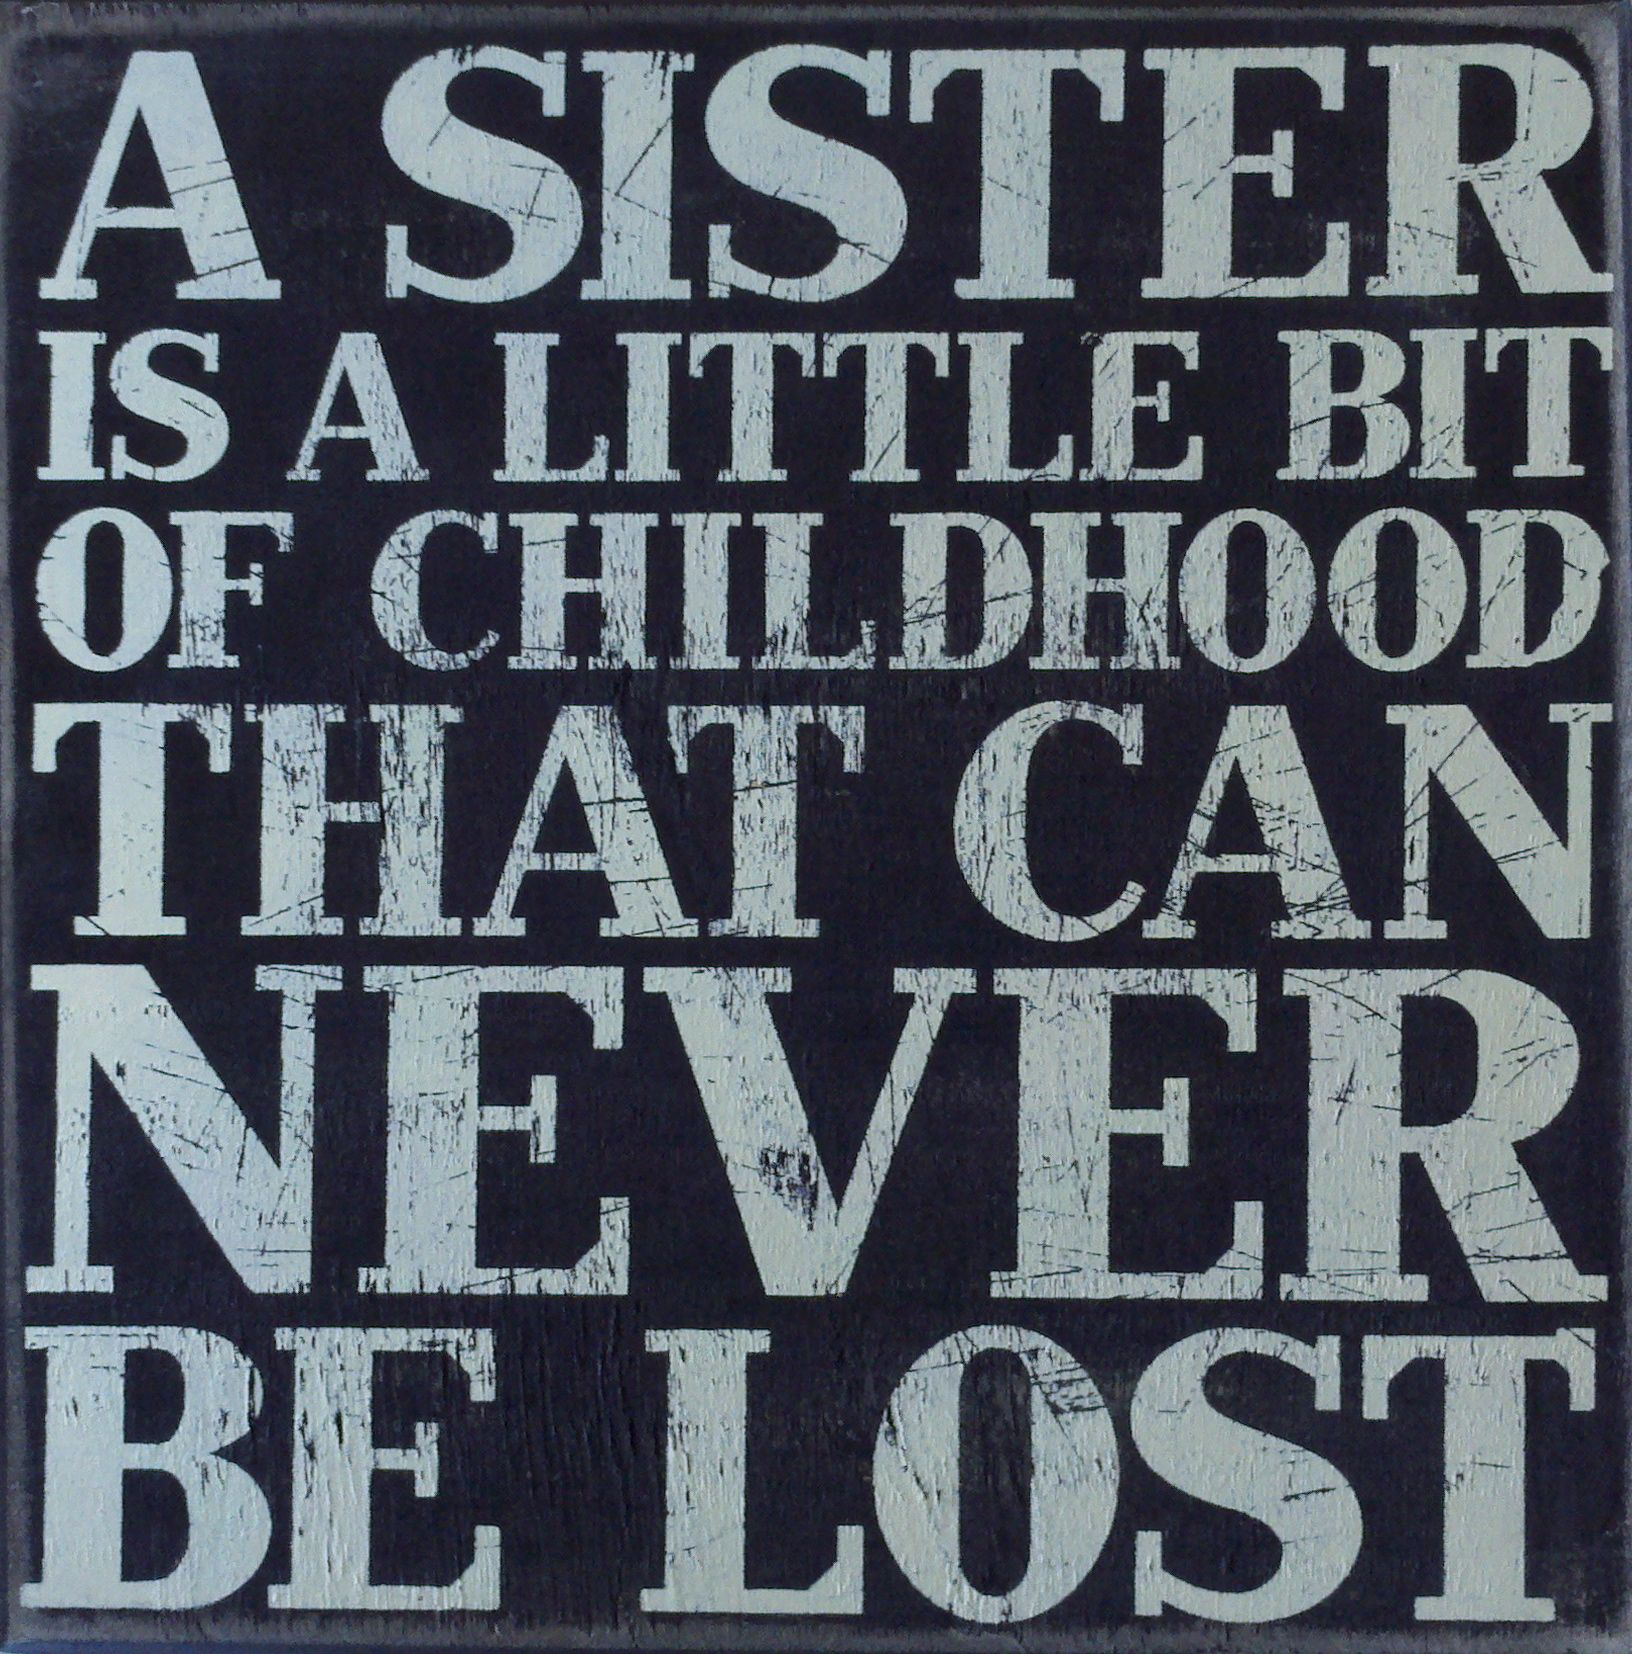 Love My Sister Quotes A Sister Is A Little Bit Of Childhood That Can Never Be Lost